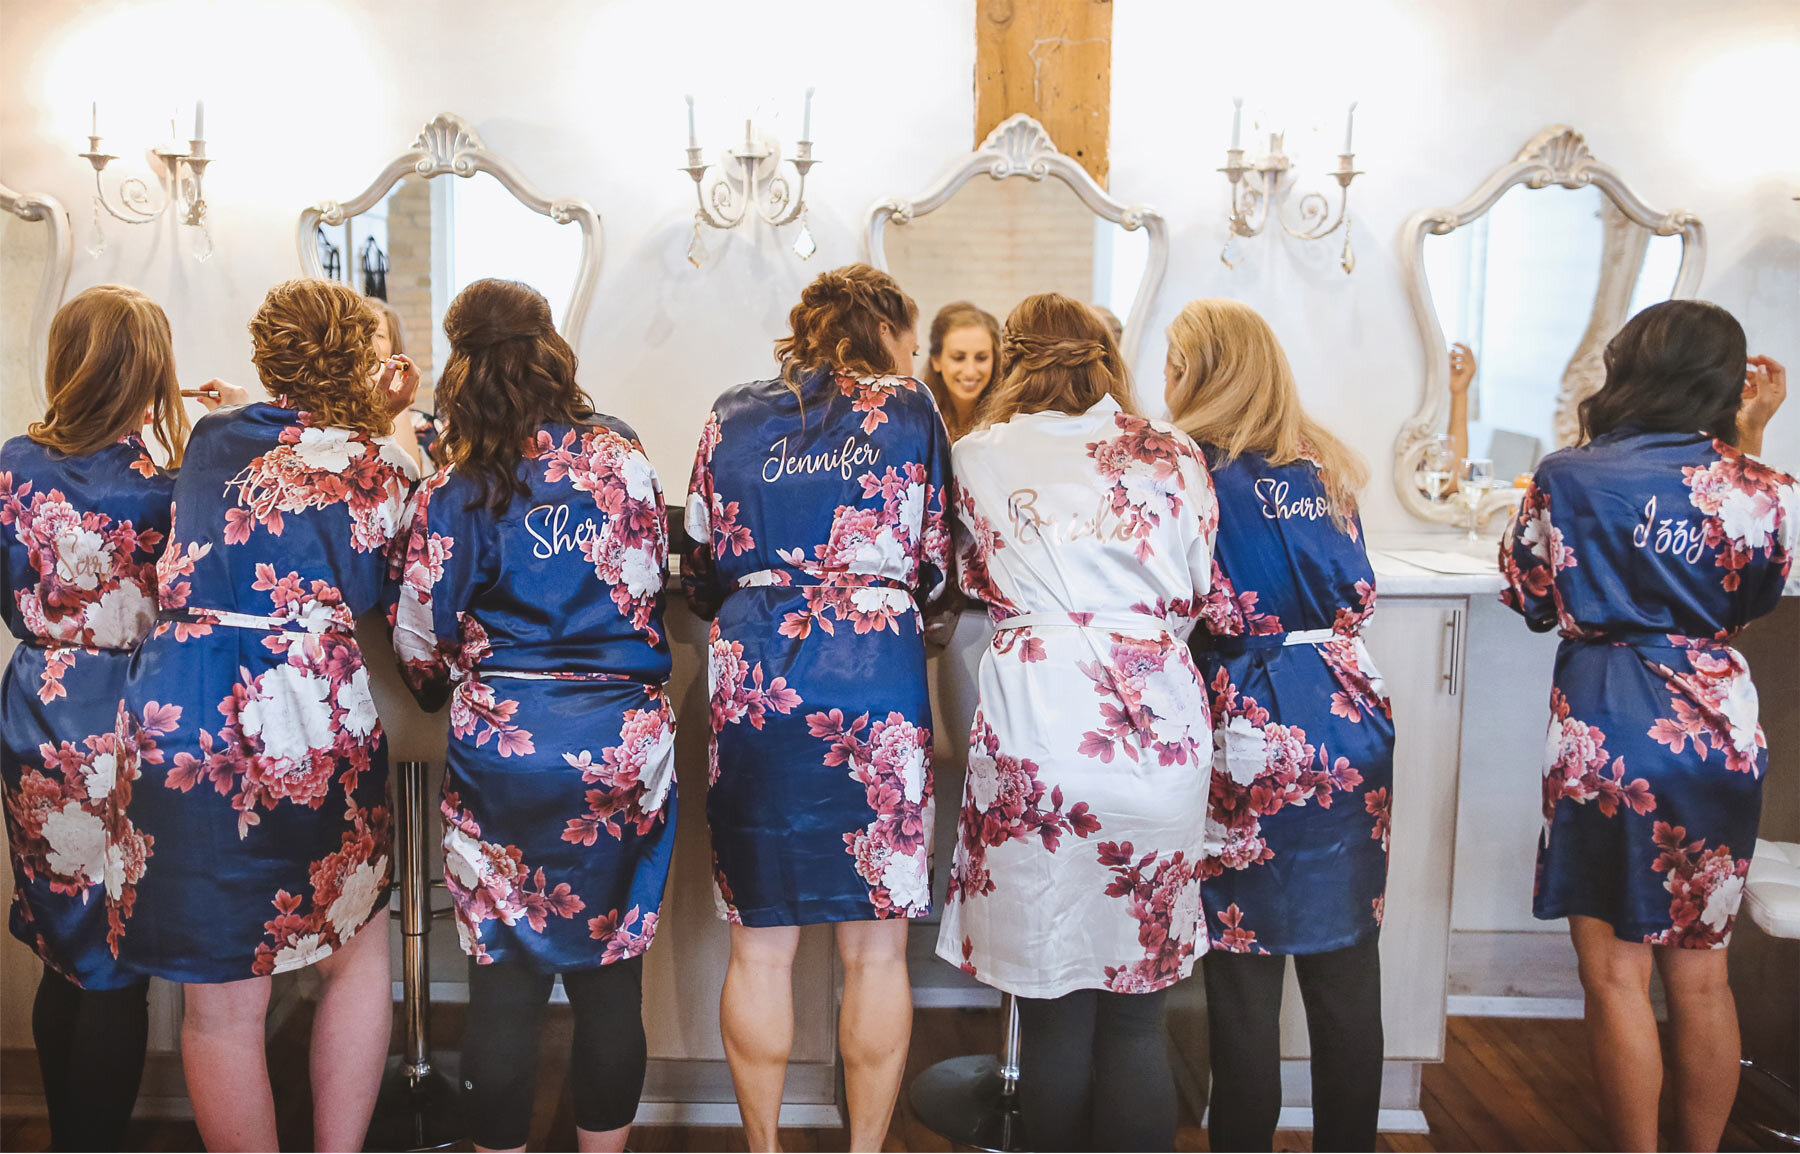 01-Minnesota-Wedding-Vick-Photography-Minneapolis-Event-Centers-Robes-Bridesmaids-Bride-Amy-and-Avi.jpg